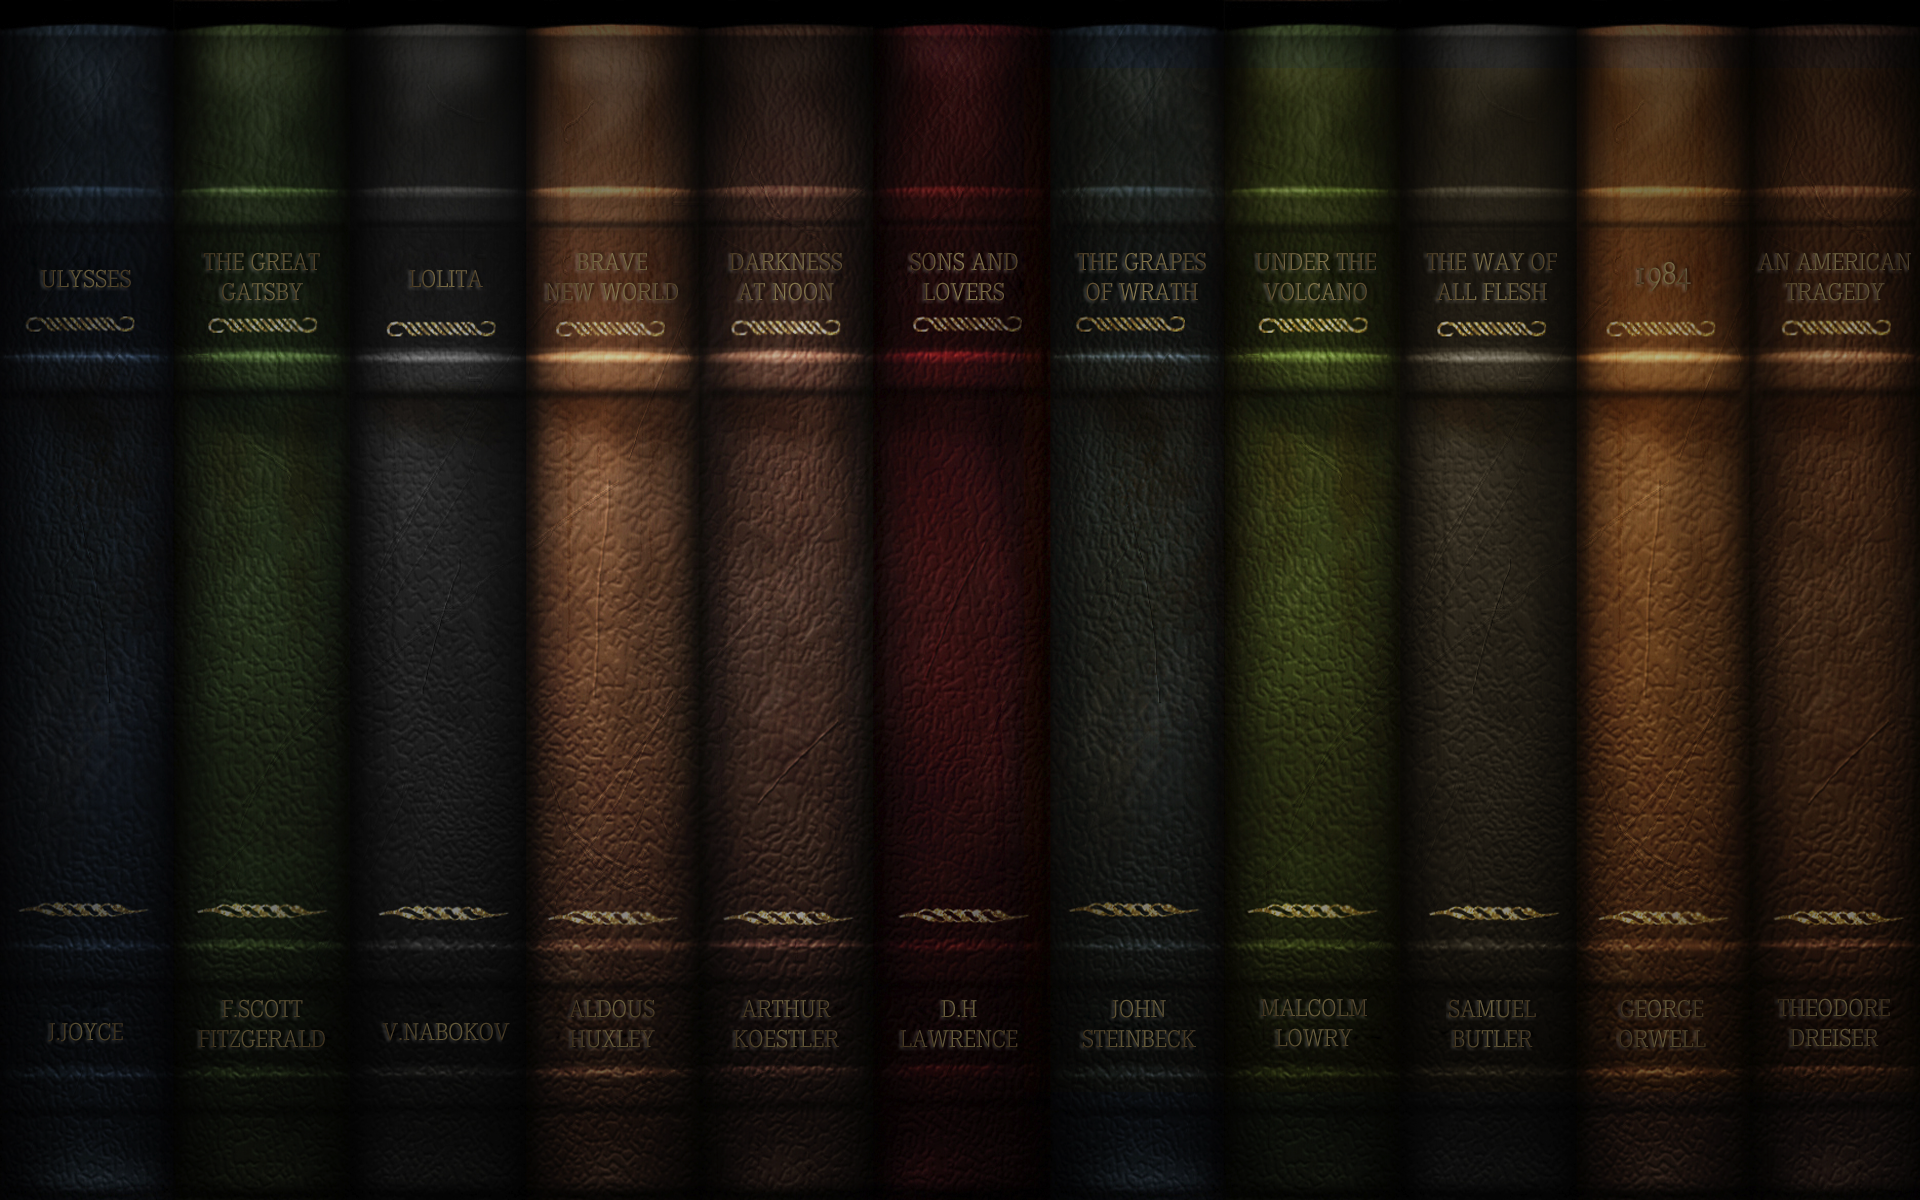 Books Wallpaper book wallpaper hd - wallpapersafari